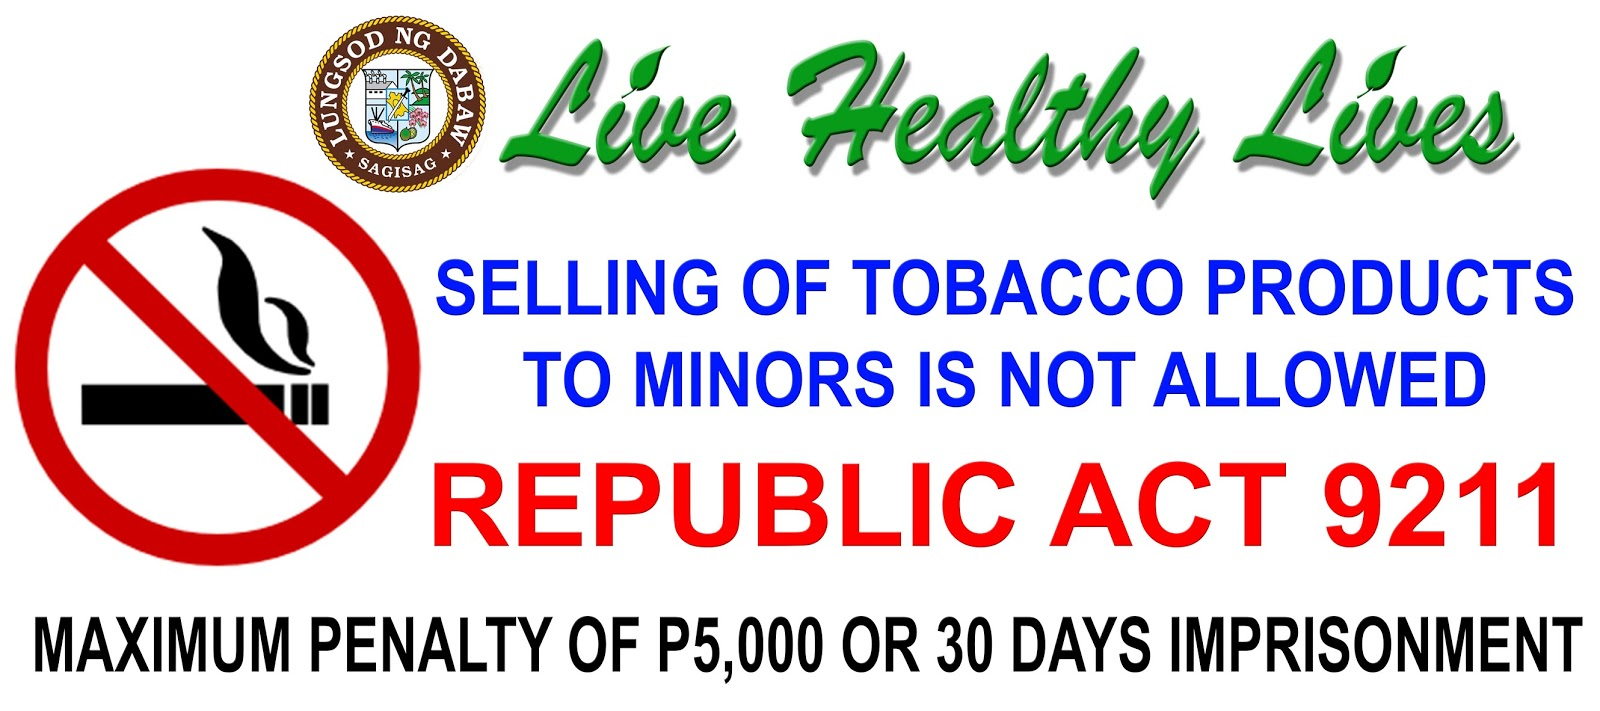 republic act 9211 The court of appeals has declared invalid an anti-smoking ordinance adopted by the metropolitan manila development authority in 2011, saying the agency had no police and legislative powers to enforce the anti-smoking provisions of republic act no 9211 or the tobacco regulation act of 2003.